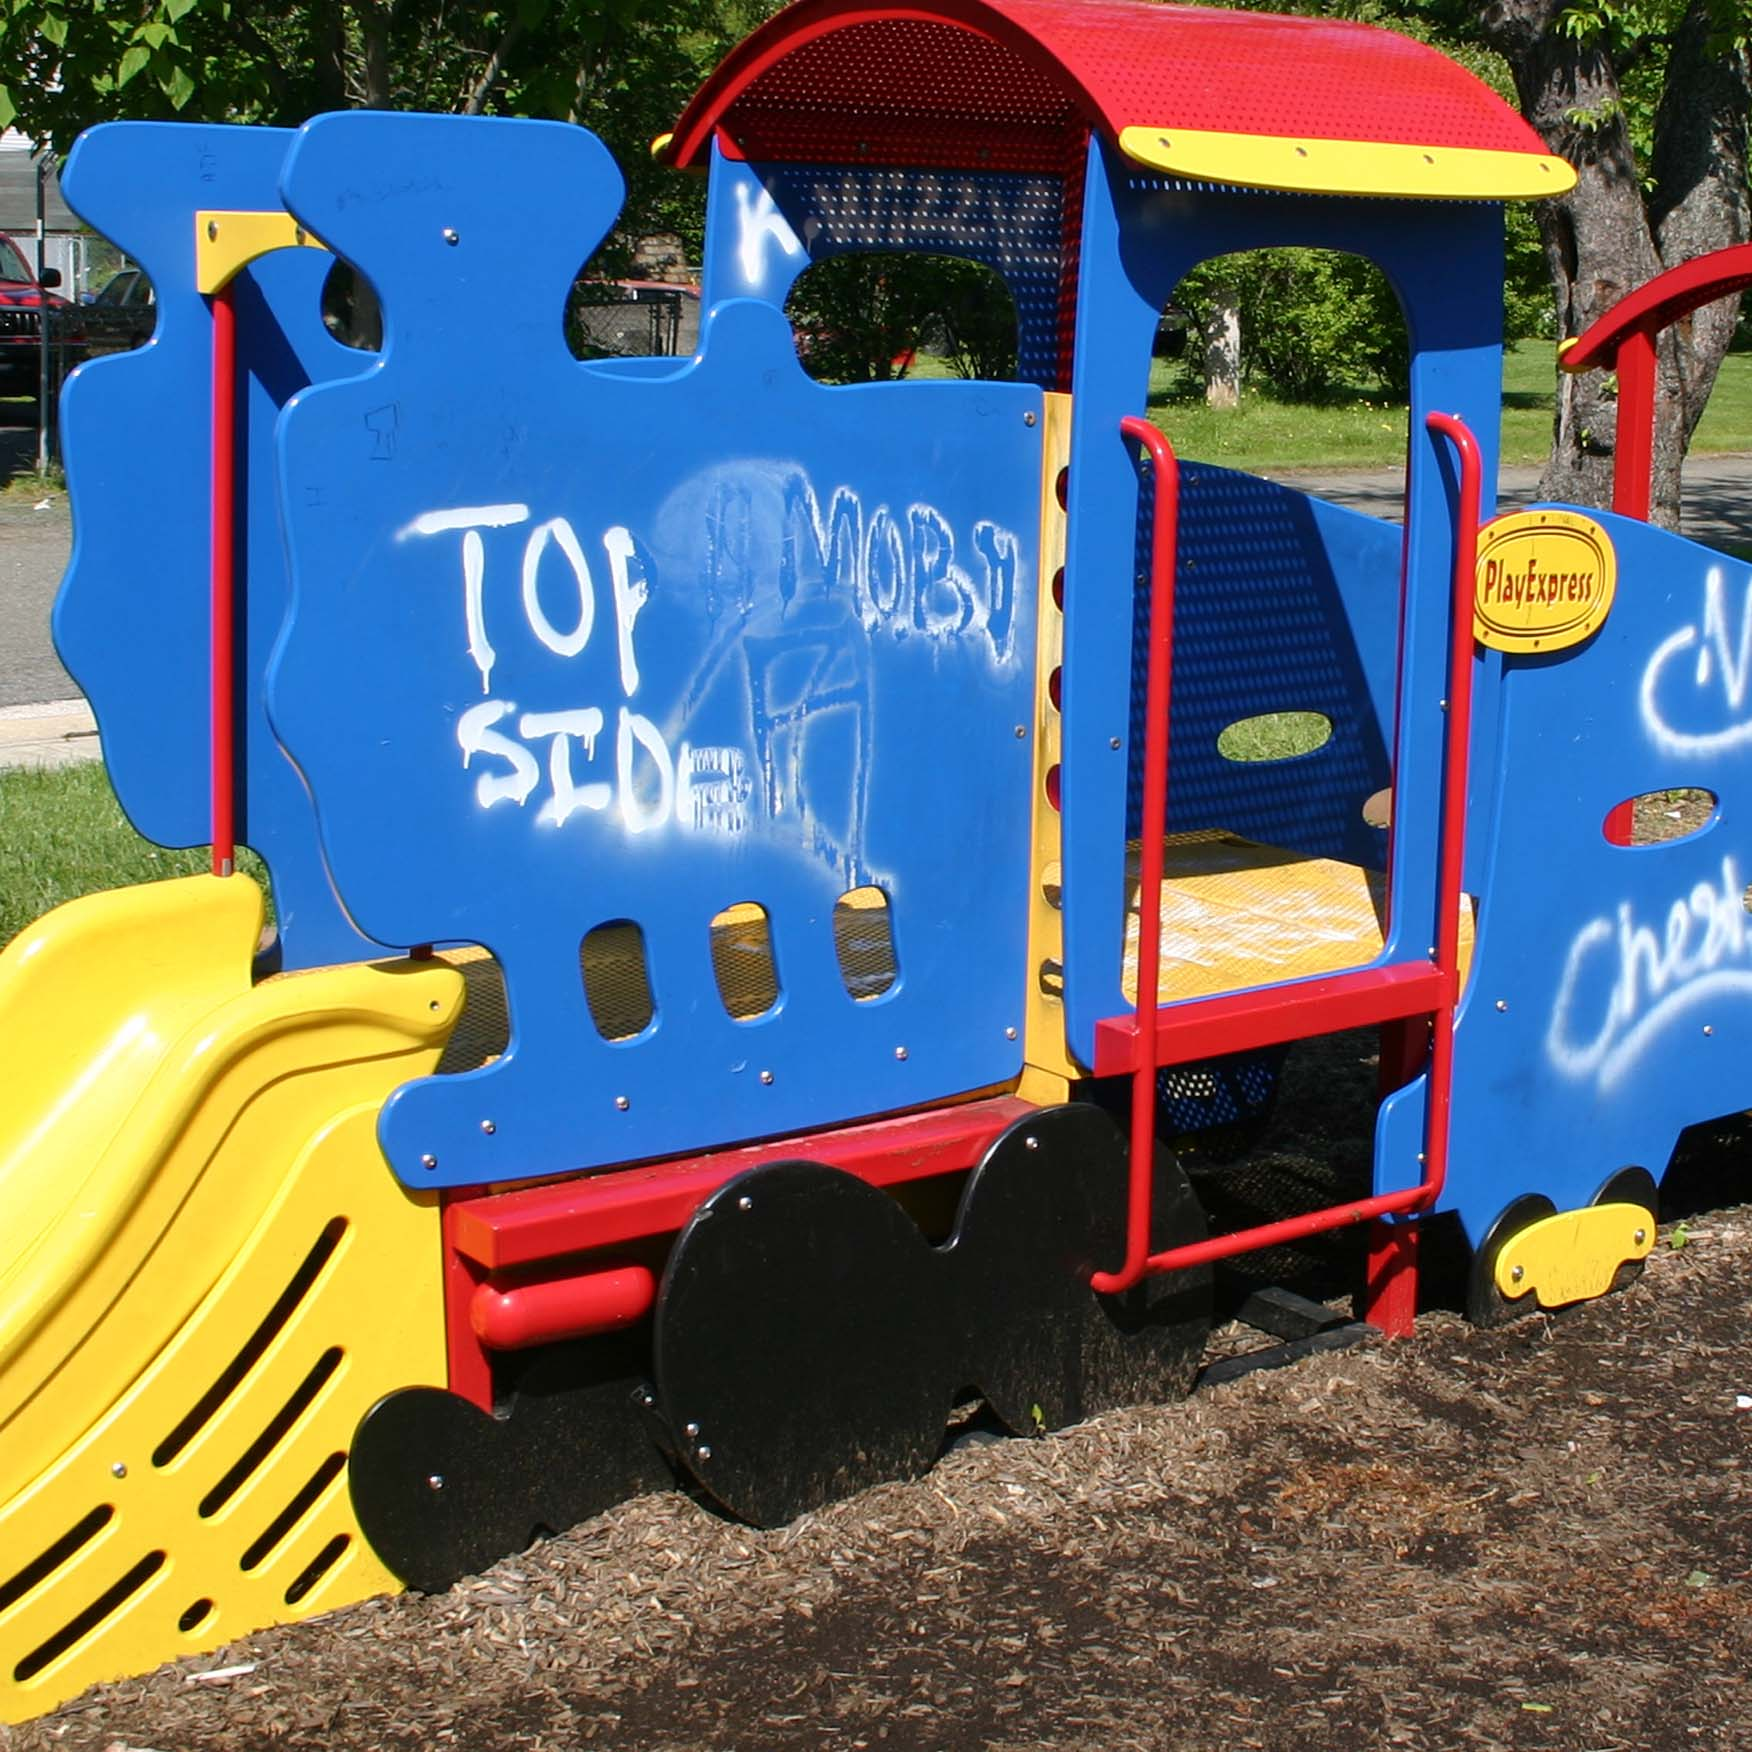 Let graffiti remover Tagaway dwell on play ground equipment